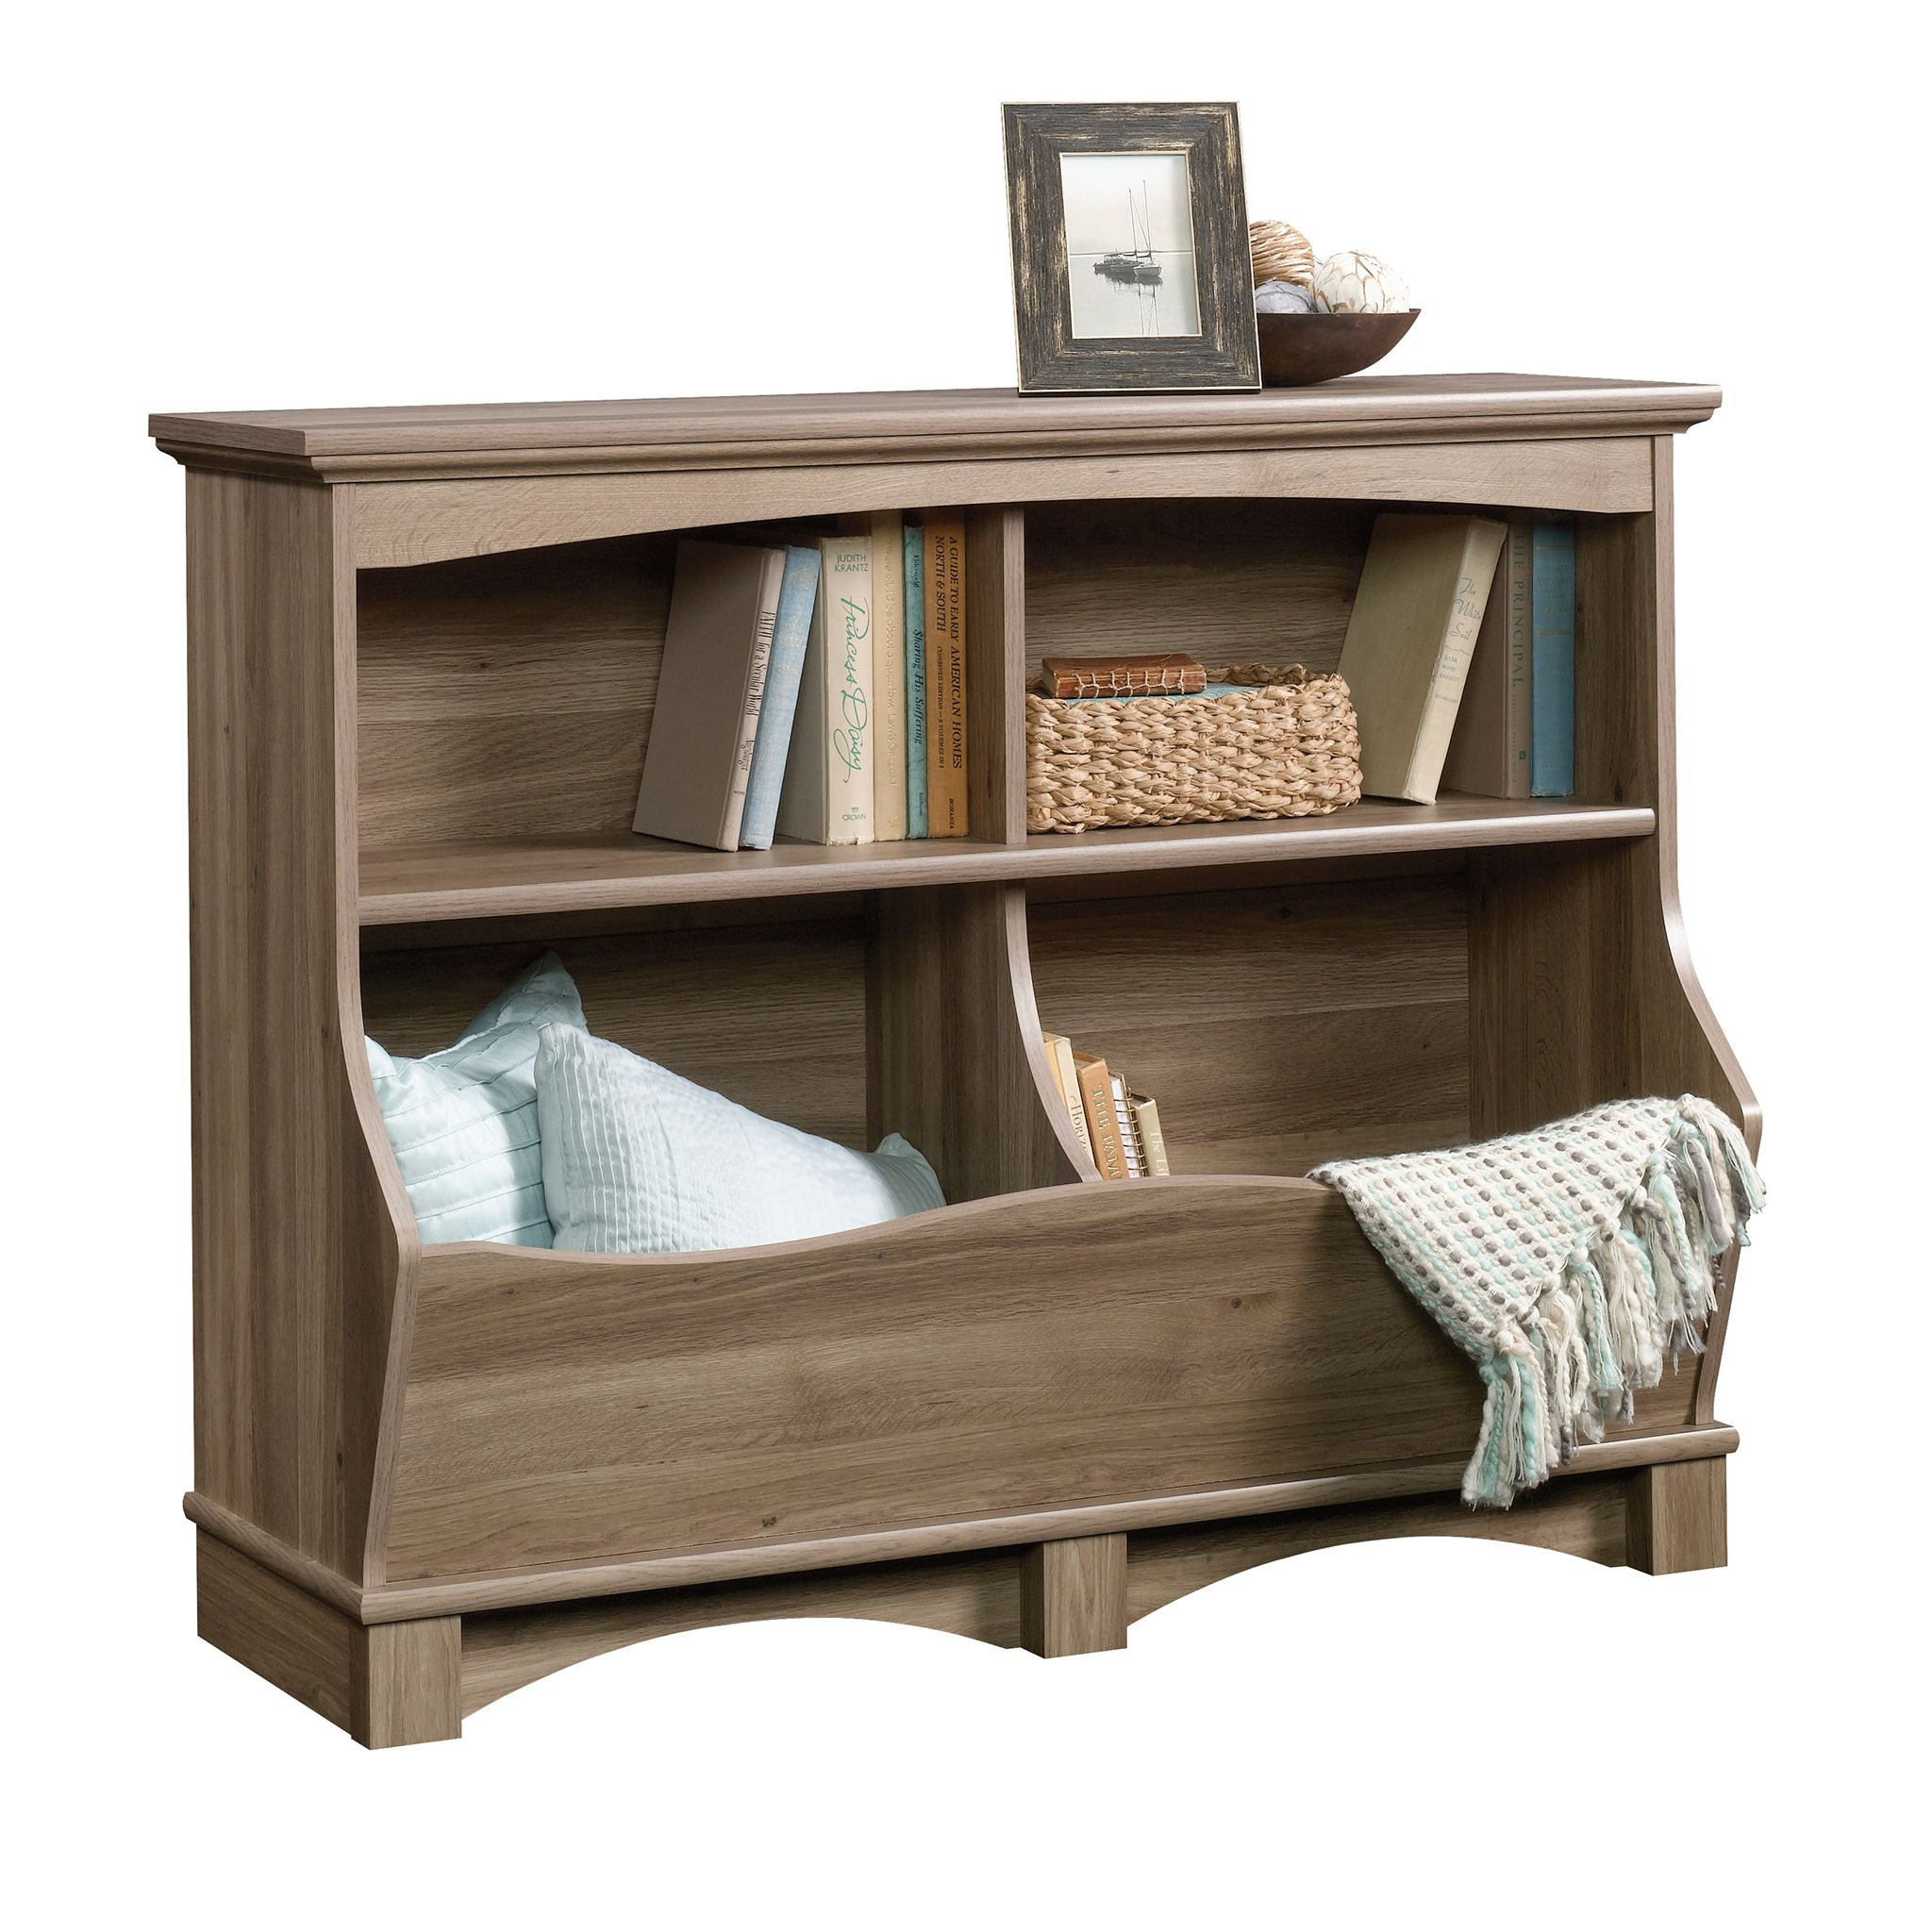 Home in 2020 (With images) Bookcase, Oak finish, Mud